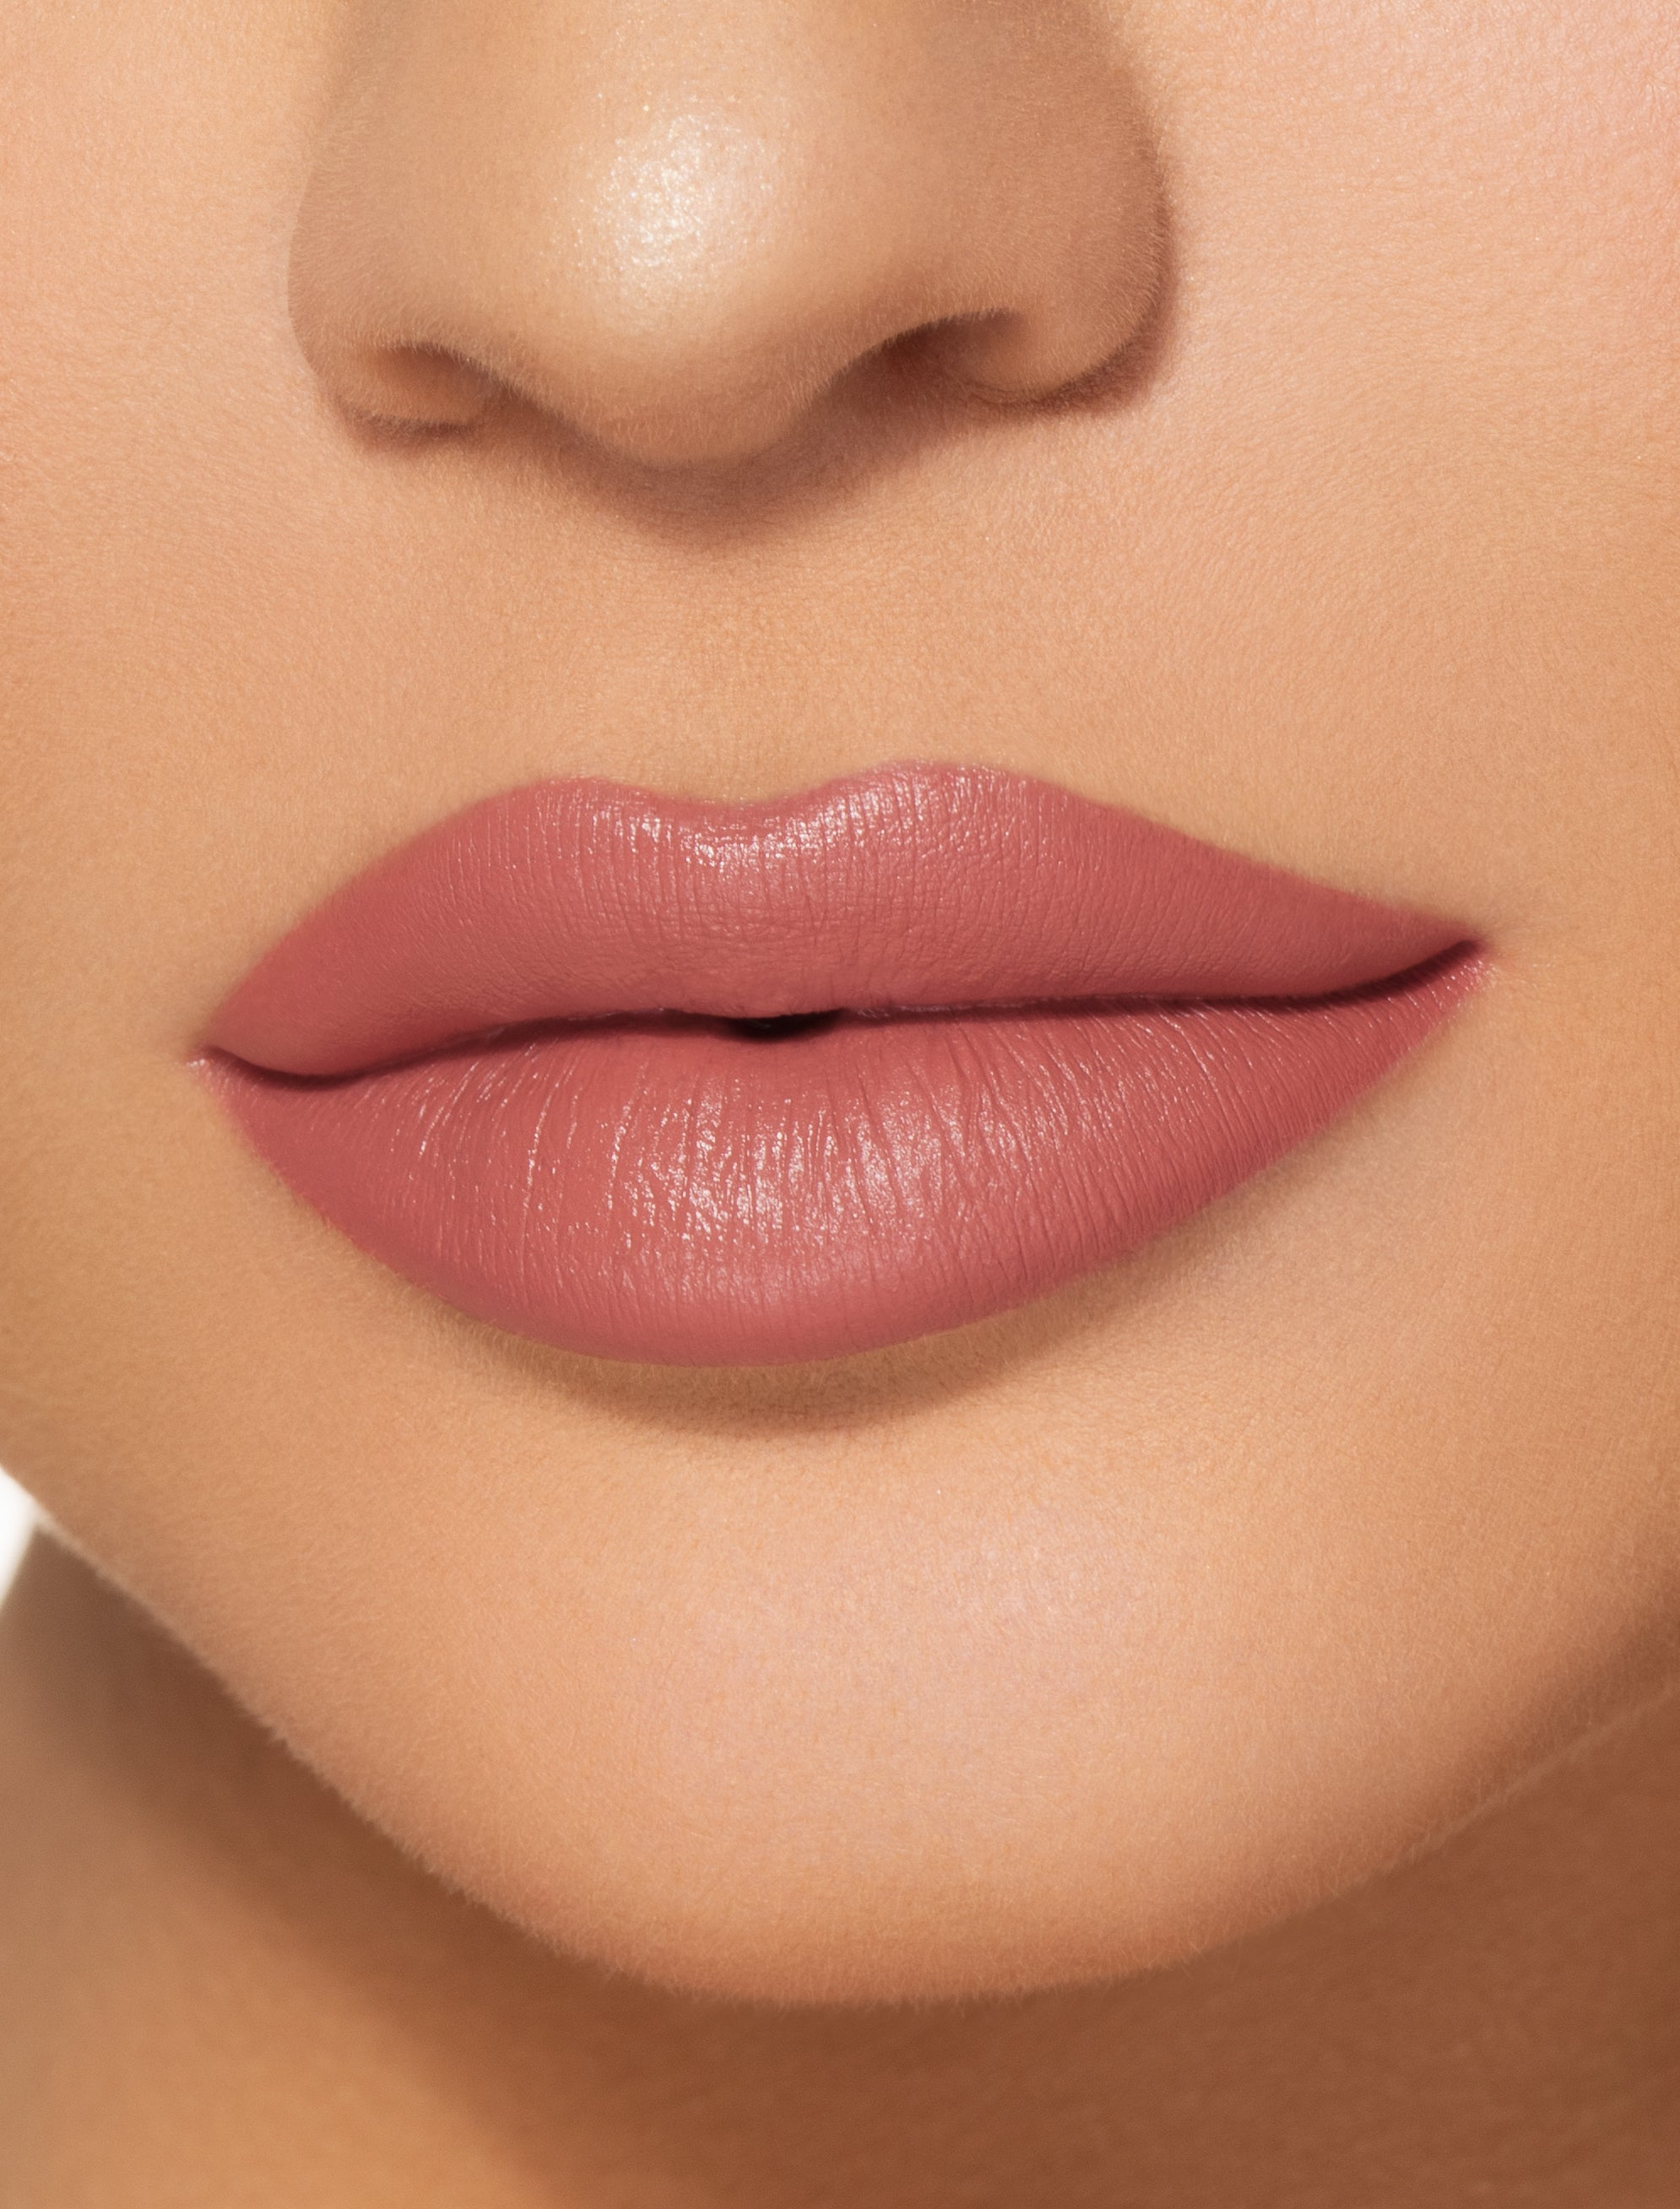 Charm | Velvet Liquid Lipstick - Kylie Cosmetics by Kylie Jenner